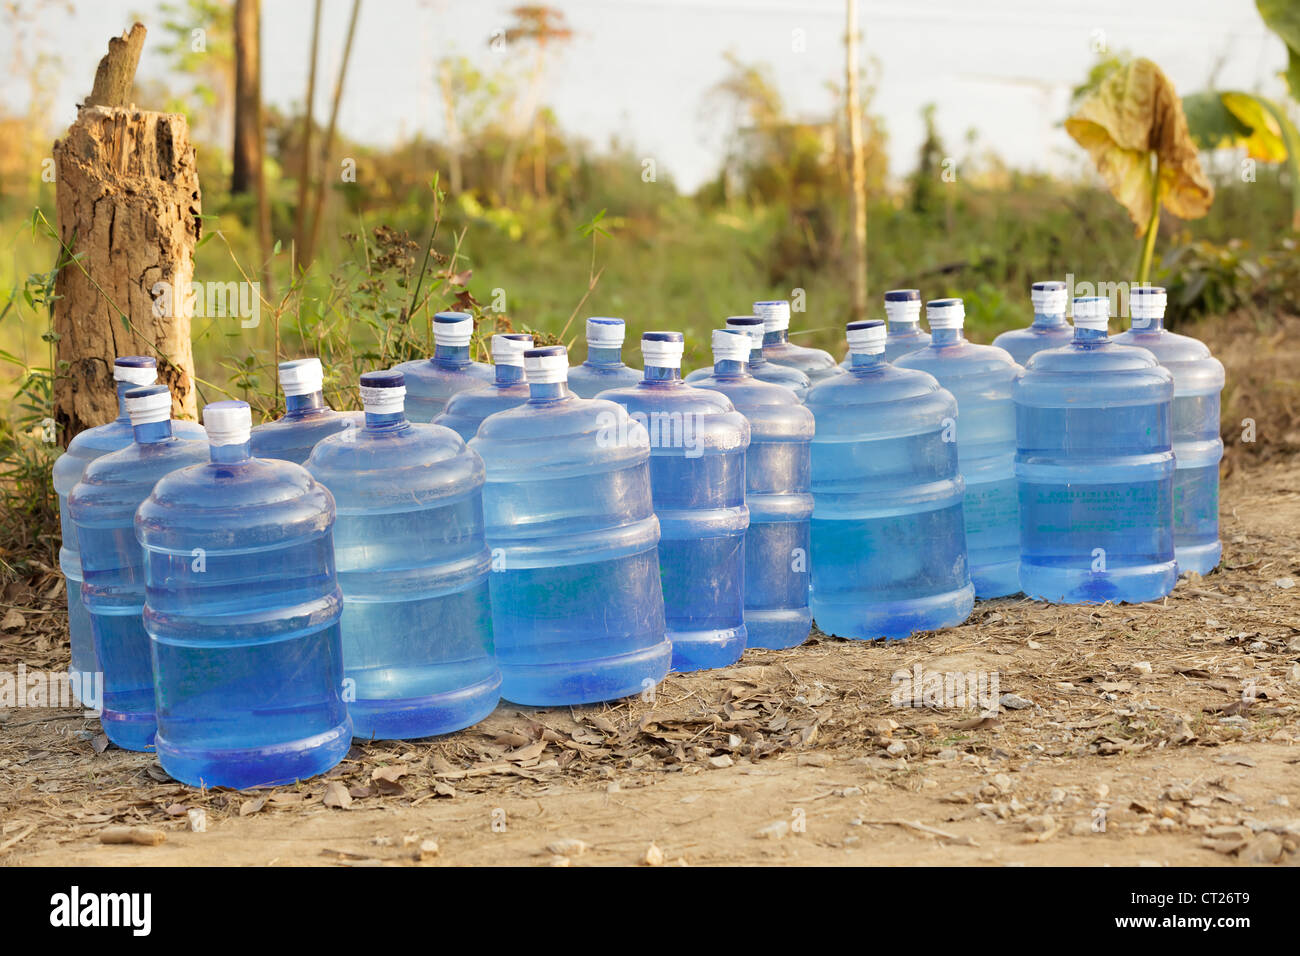 fresh water supplies in tropical dry country - Stock Image